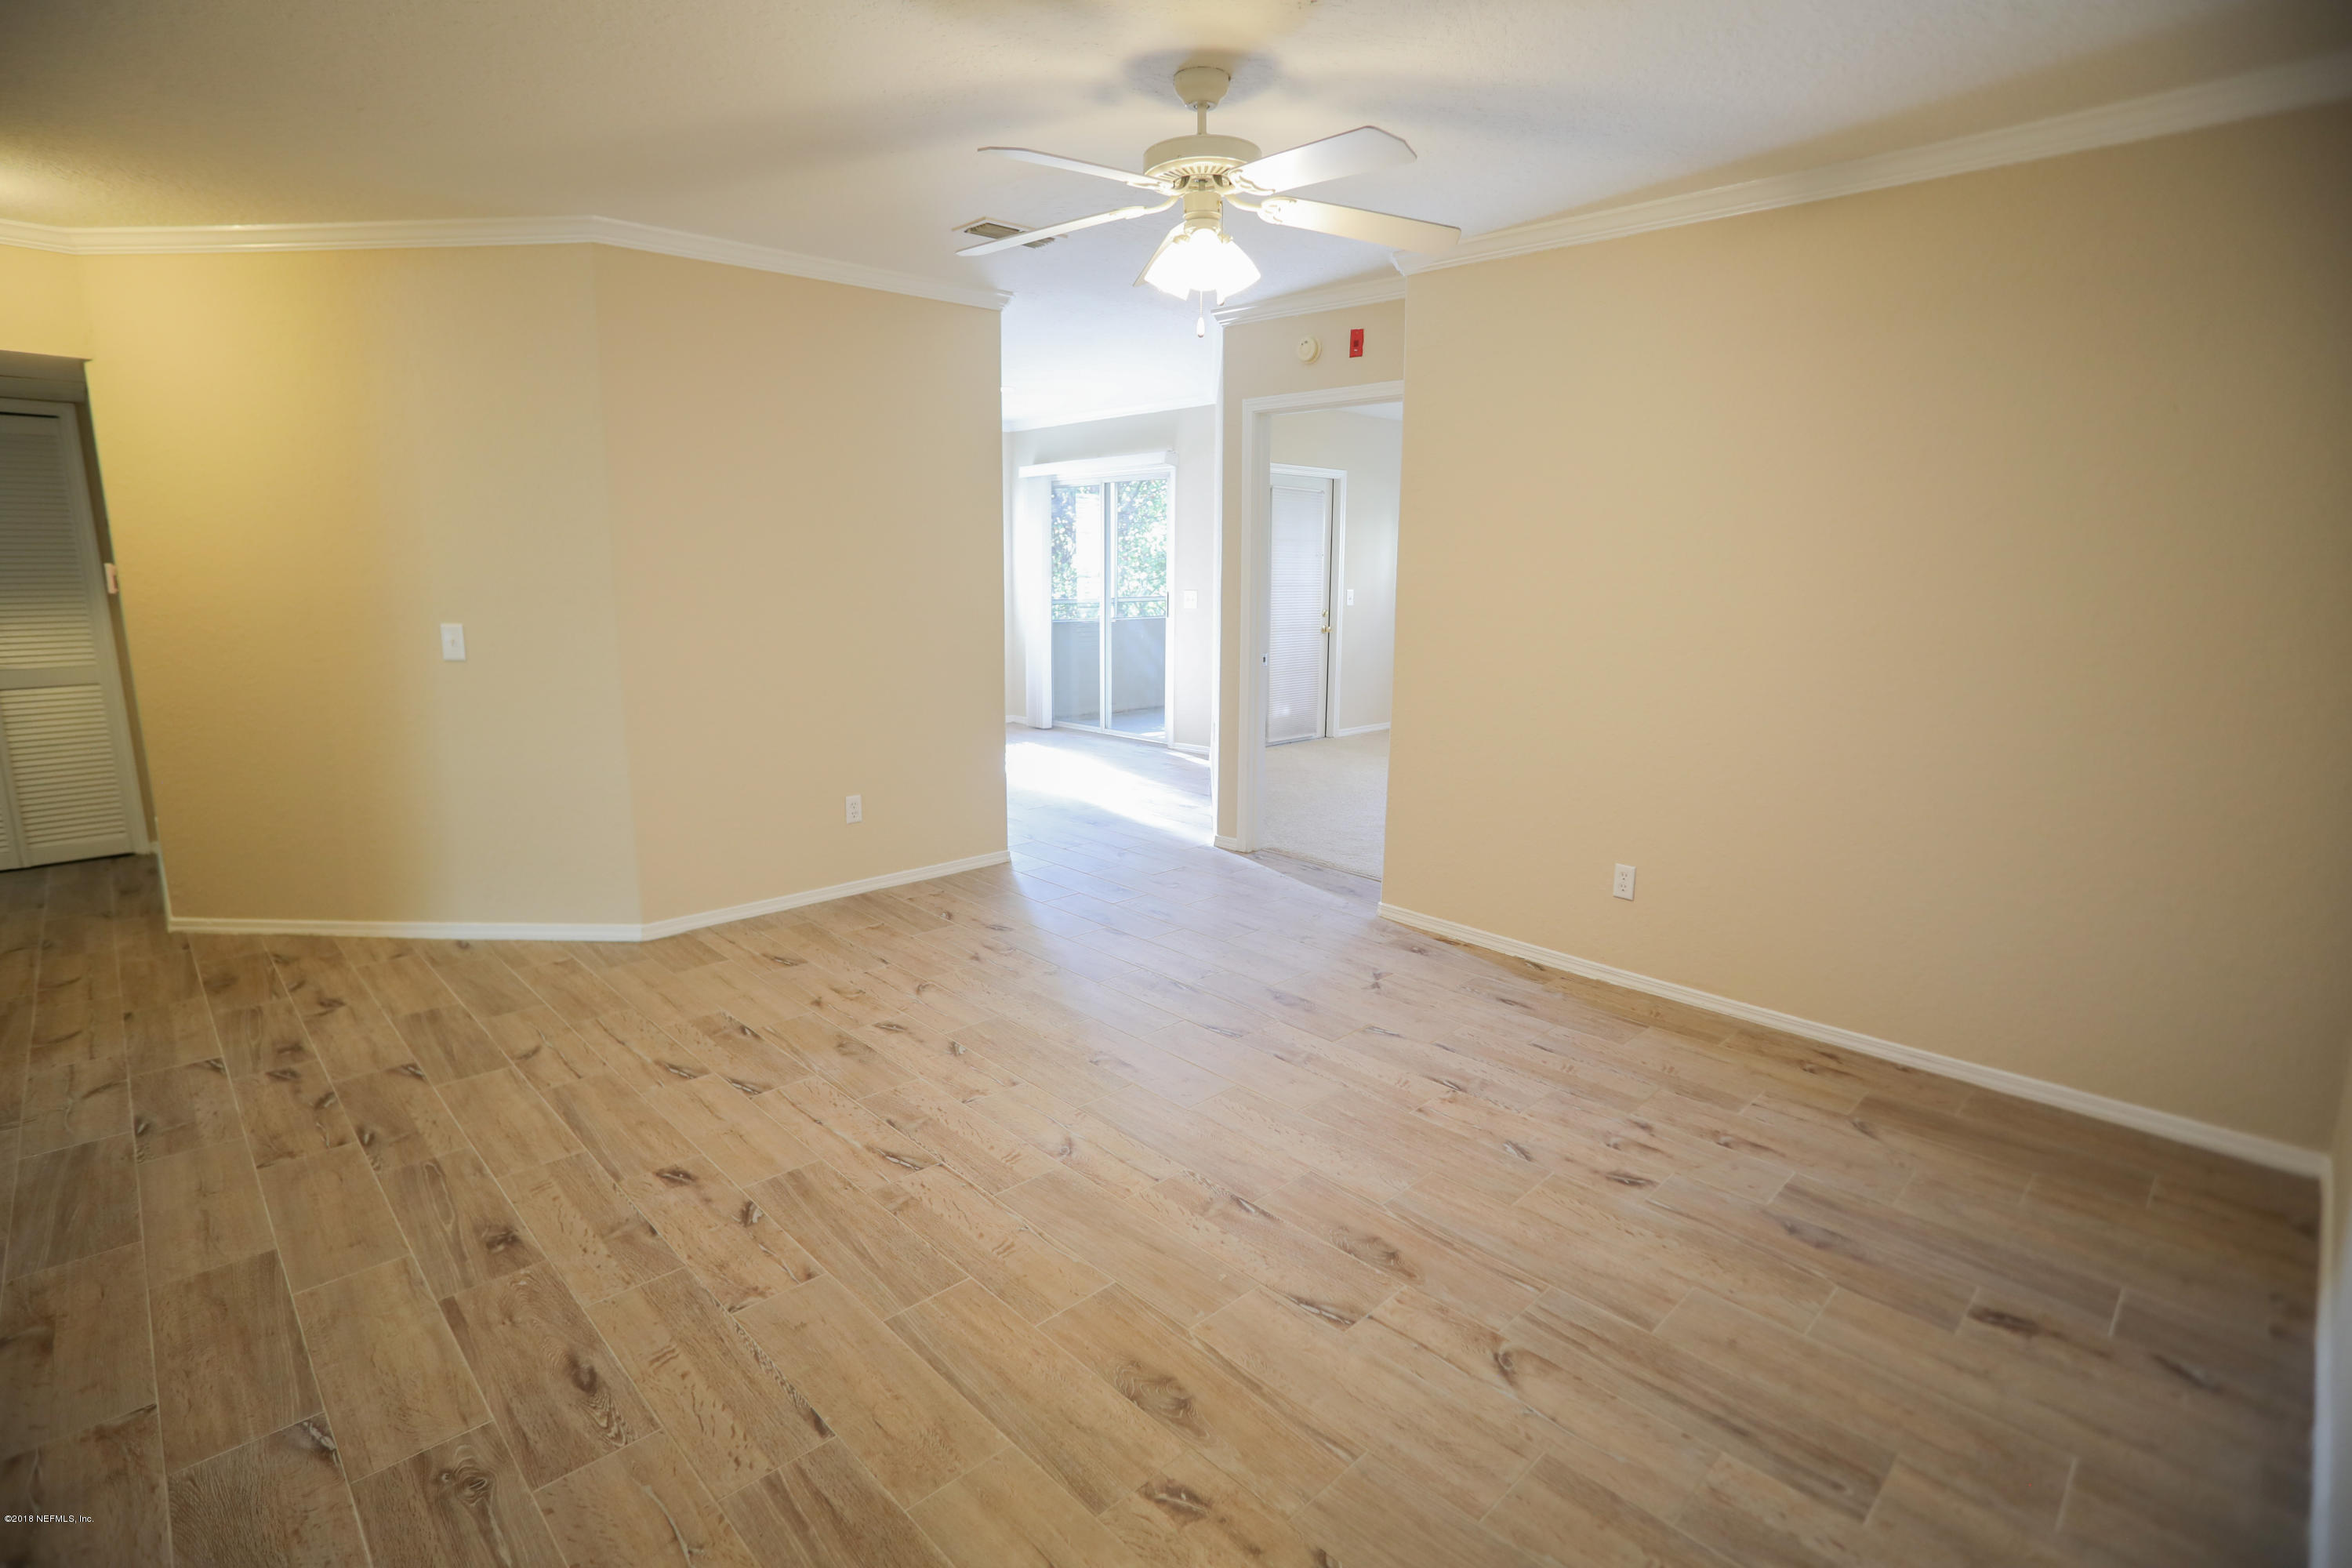 1701 THE GREENS, JACKSONVILLE BEACH, FLORIDA 32250, 2 Bedrooms Bedrooms, ,2 BathroomsBathrooms,Residential - condos/townhomes,For sale,THE GREENS,959366